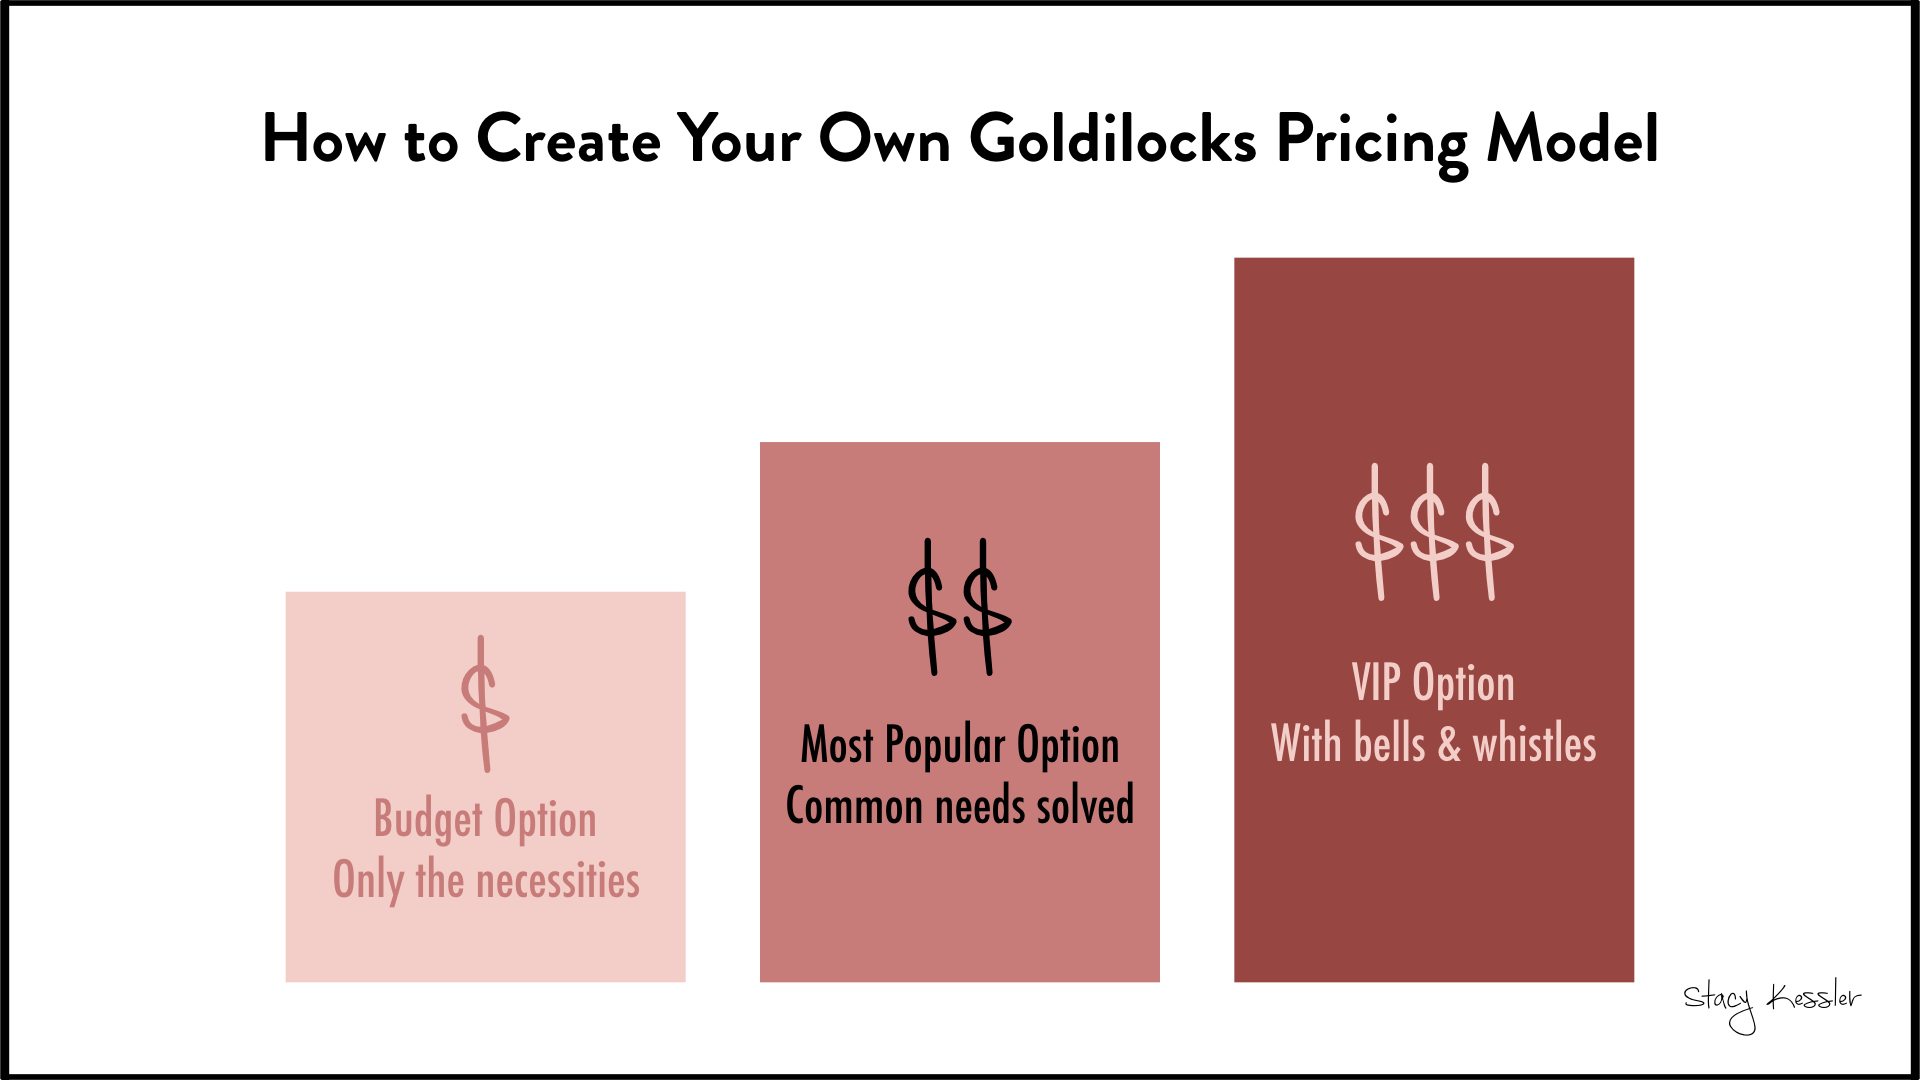 Goldilocks pricing strategy how to - stacy kessler.001.jpeg